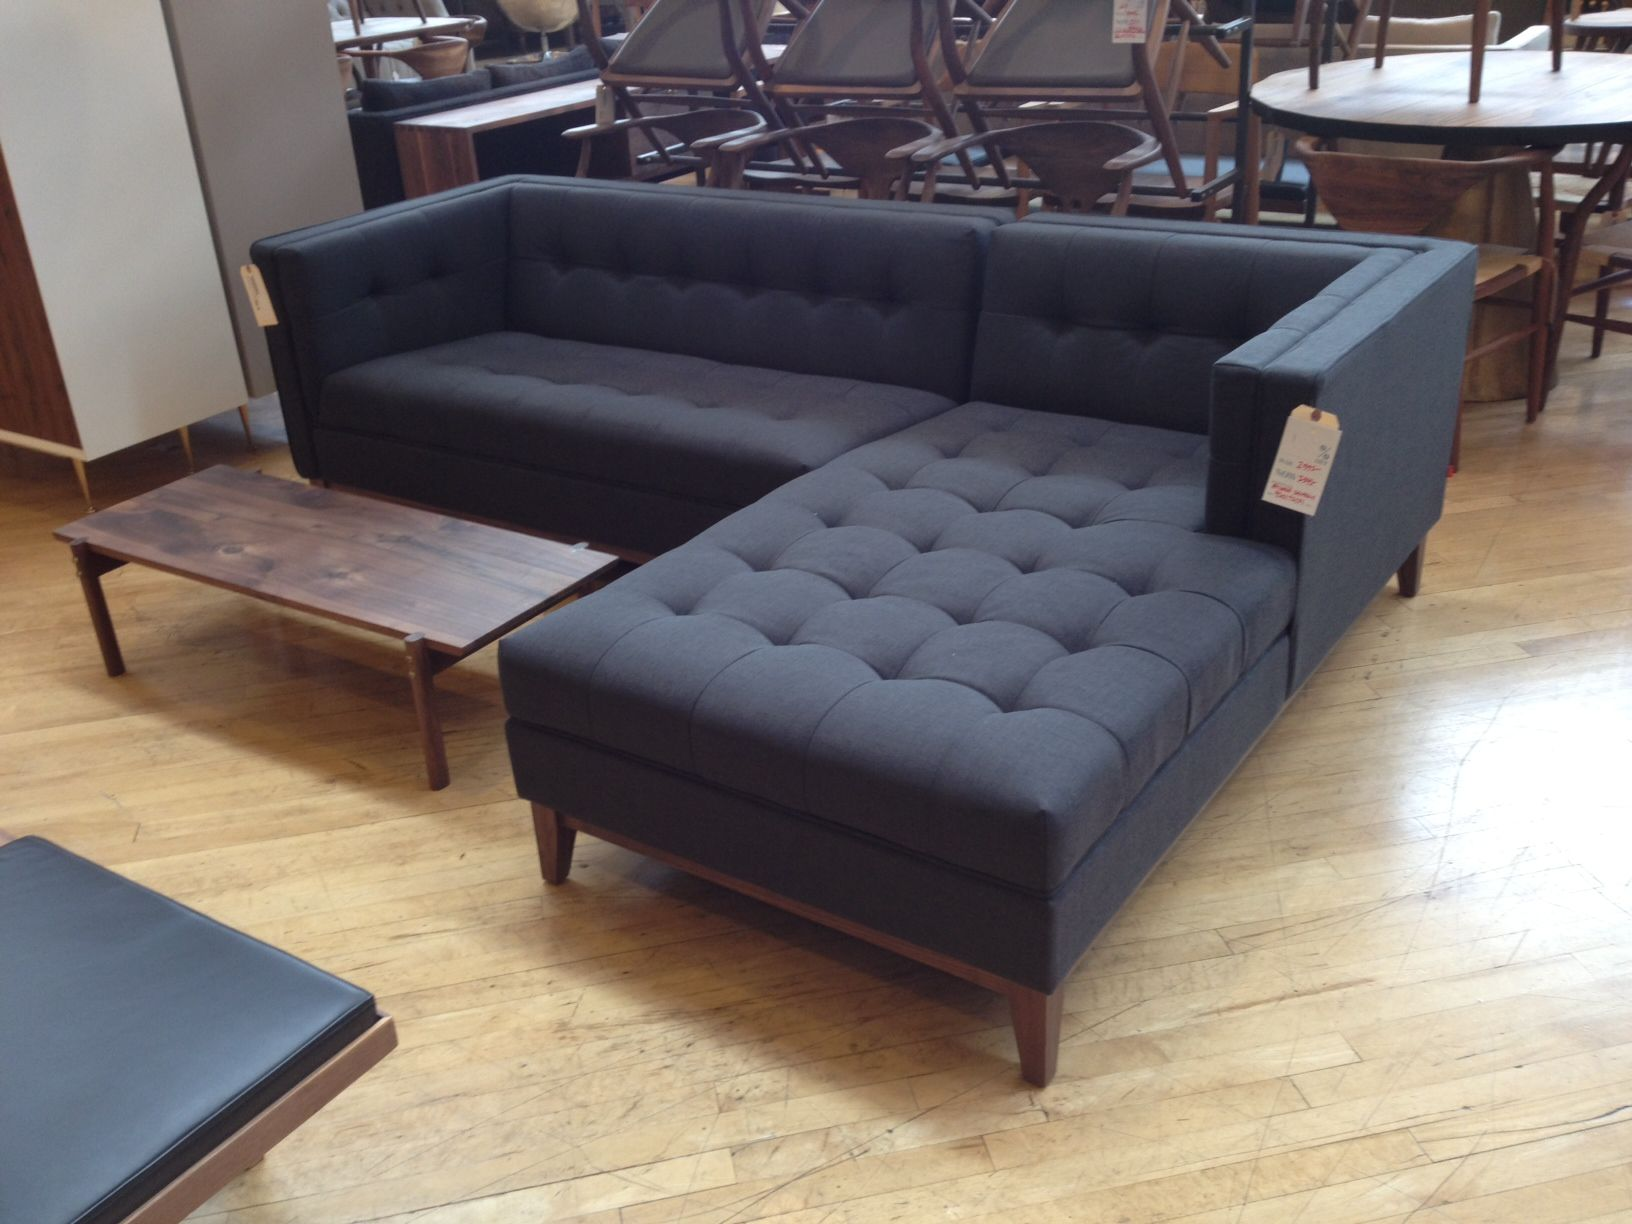 10 Non Ugly Sectional Sofas - pinned from Hommemaker.com : navy sectional sofa - Sectionals, Sofas & Couches